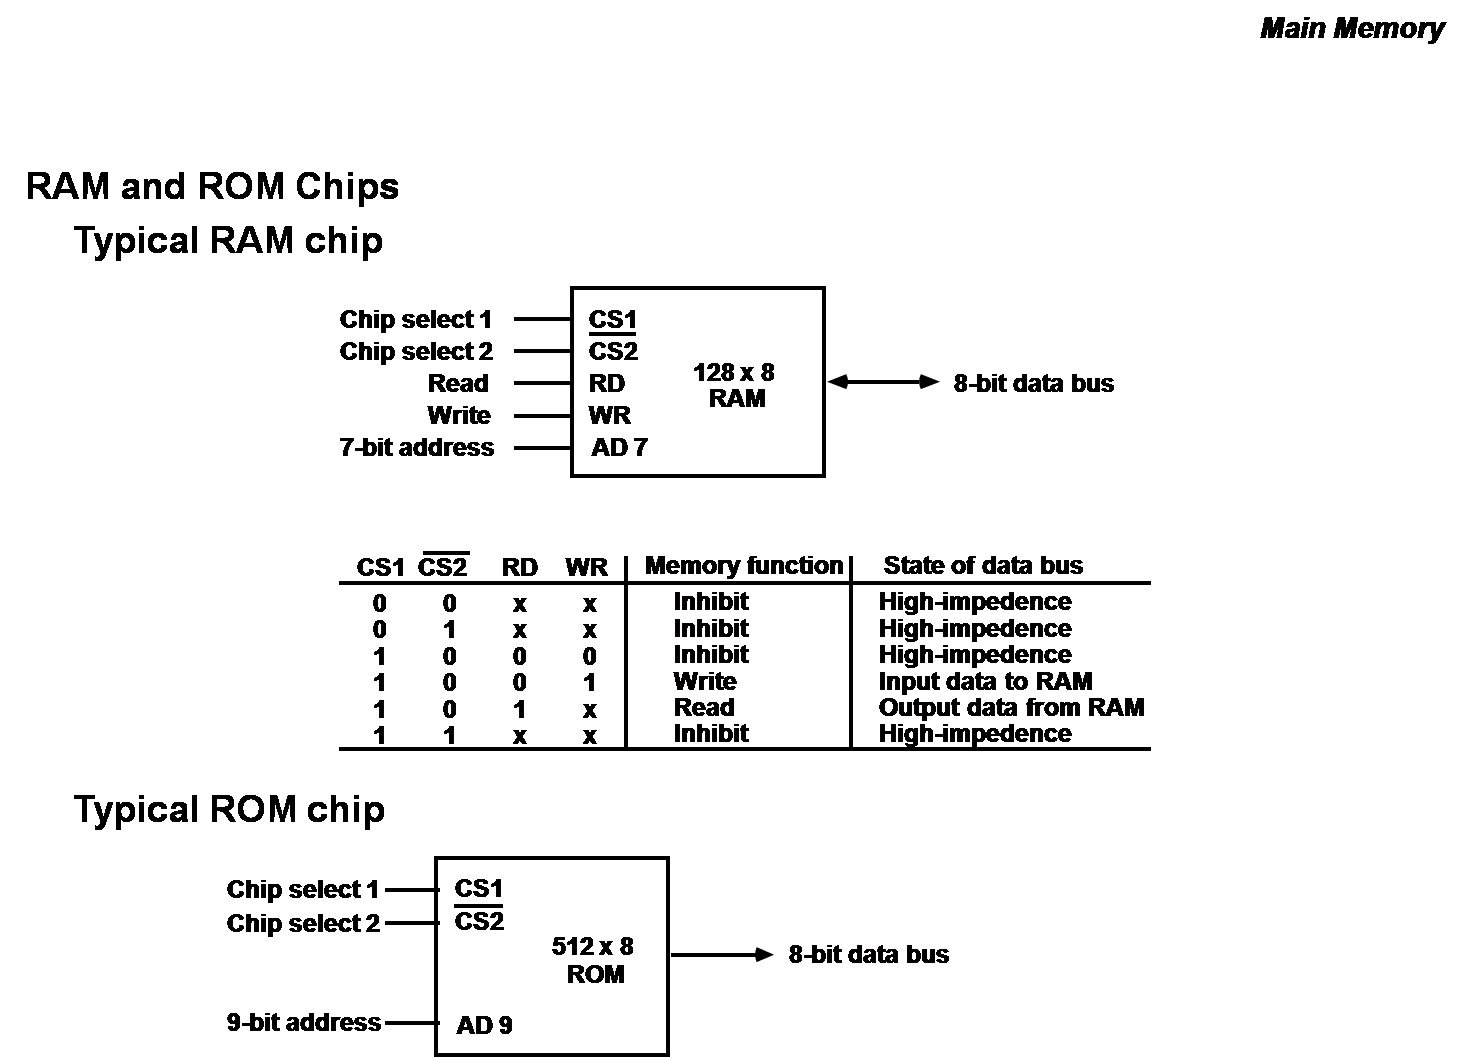 ram chip diagram wire management wiring diagram memory organisation computer organization and architecture block diagram [ 1462 x 1058 Pixel ]